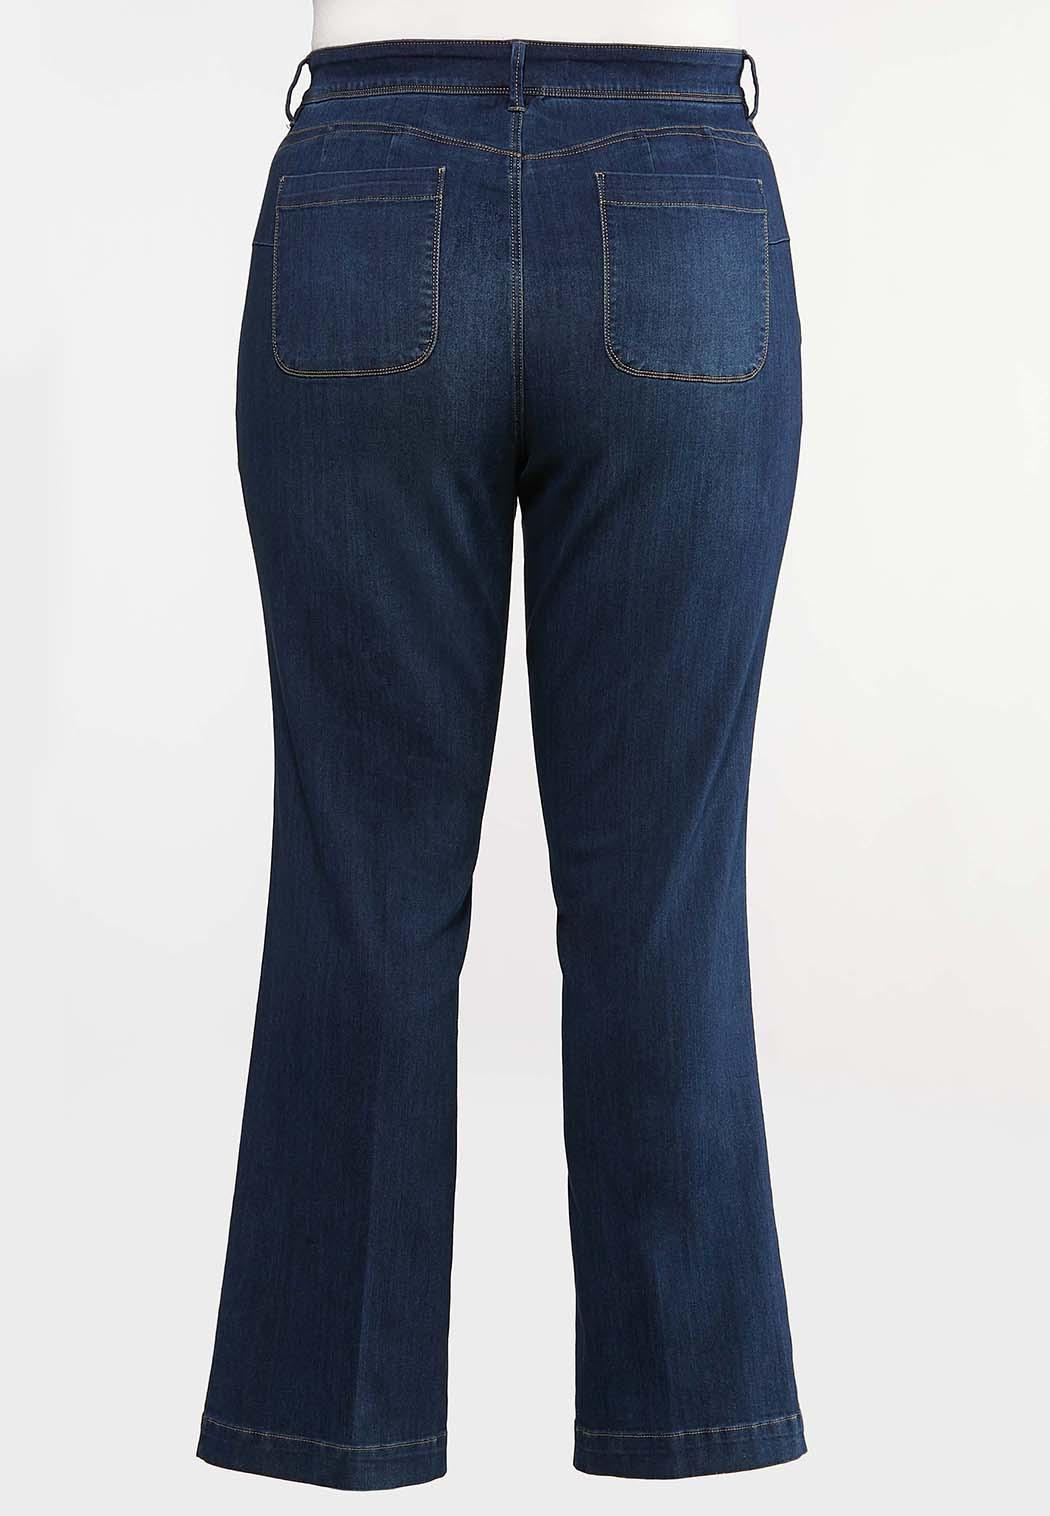 Plus Size Dark Wash Bootcut Jeans (Item #44095722)